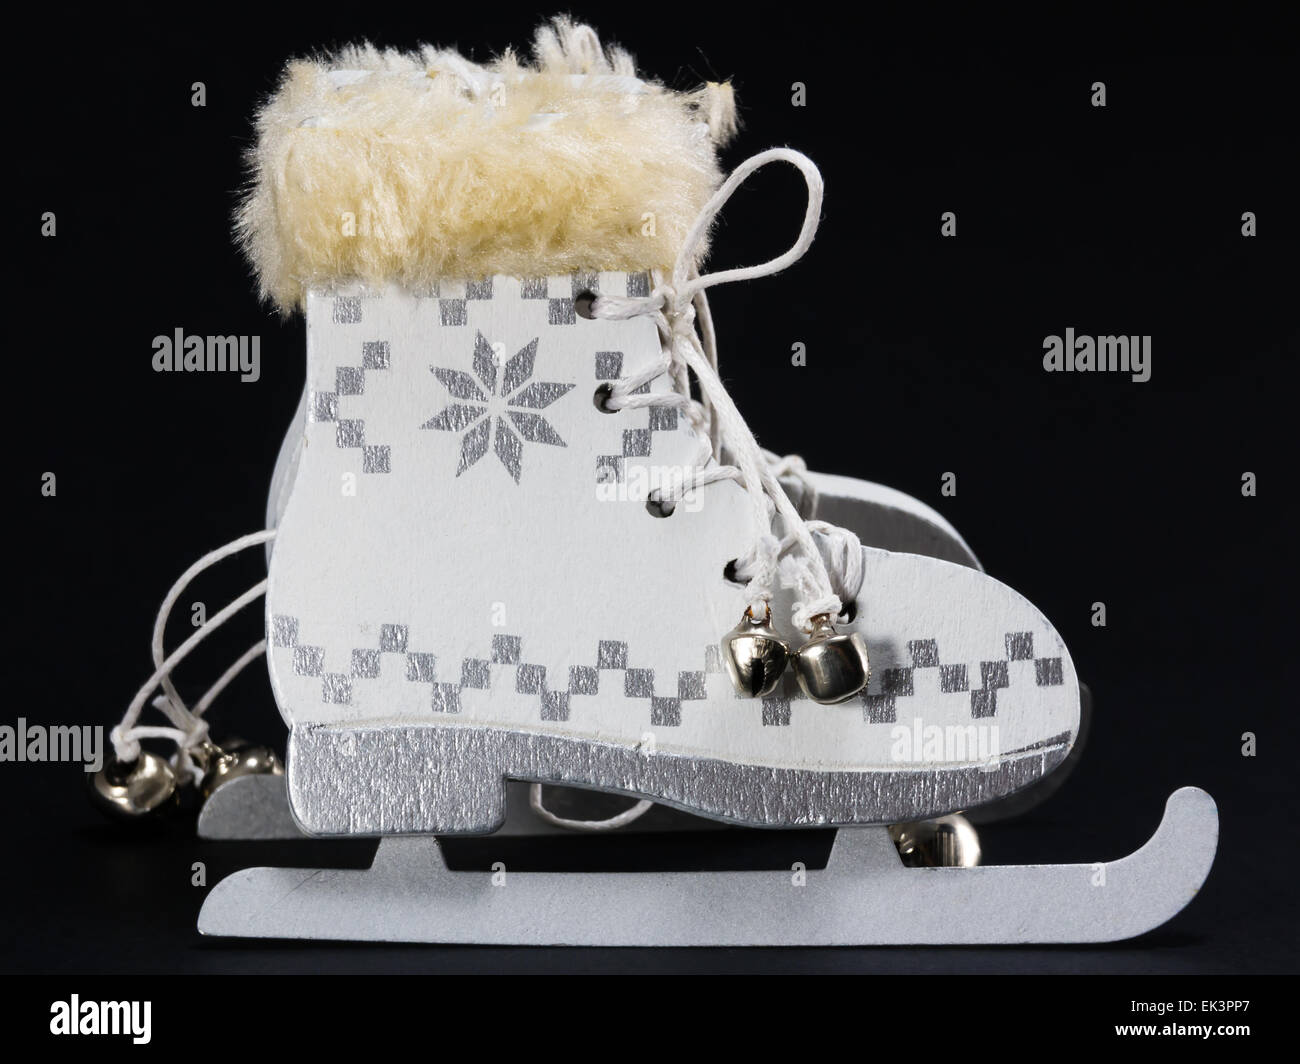 Ice Skate Christmas Ornament Stock Photos & Ice Skate Christmas ...